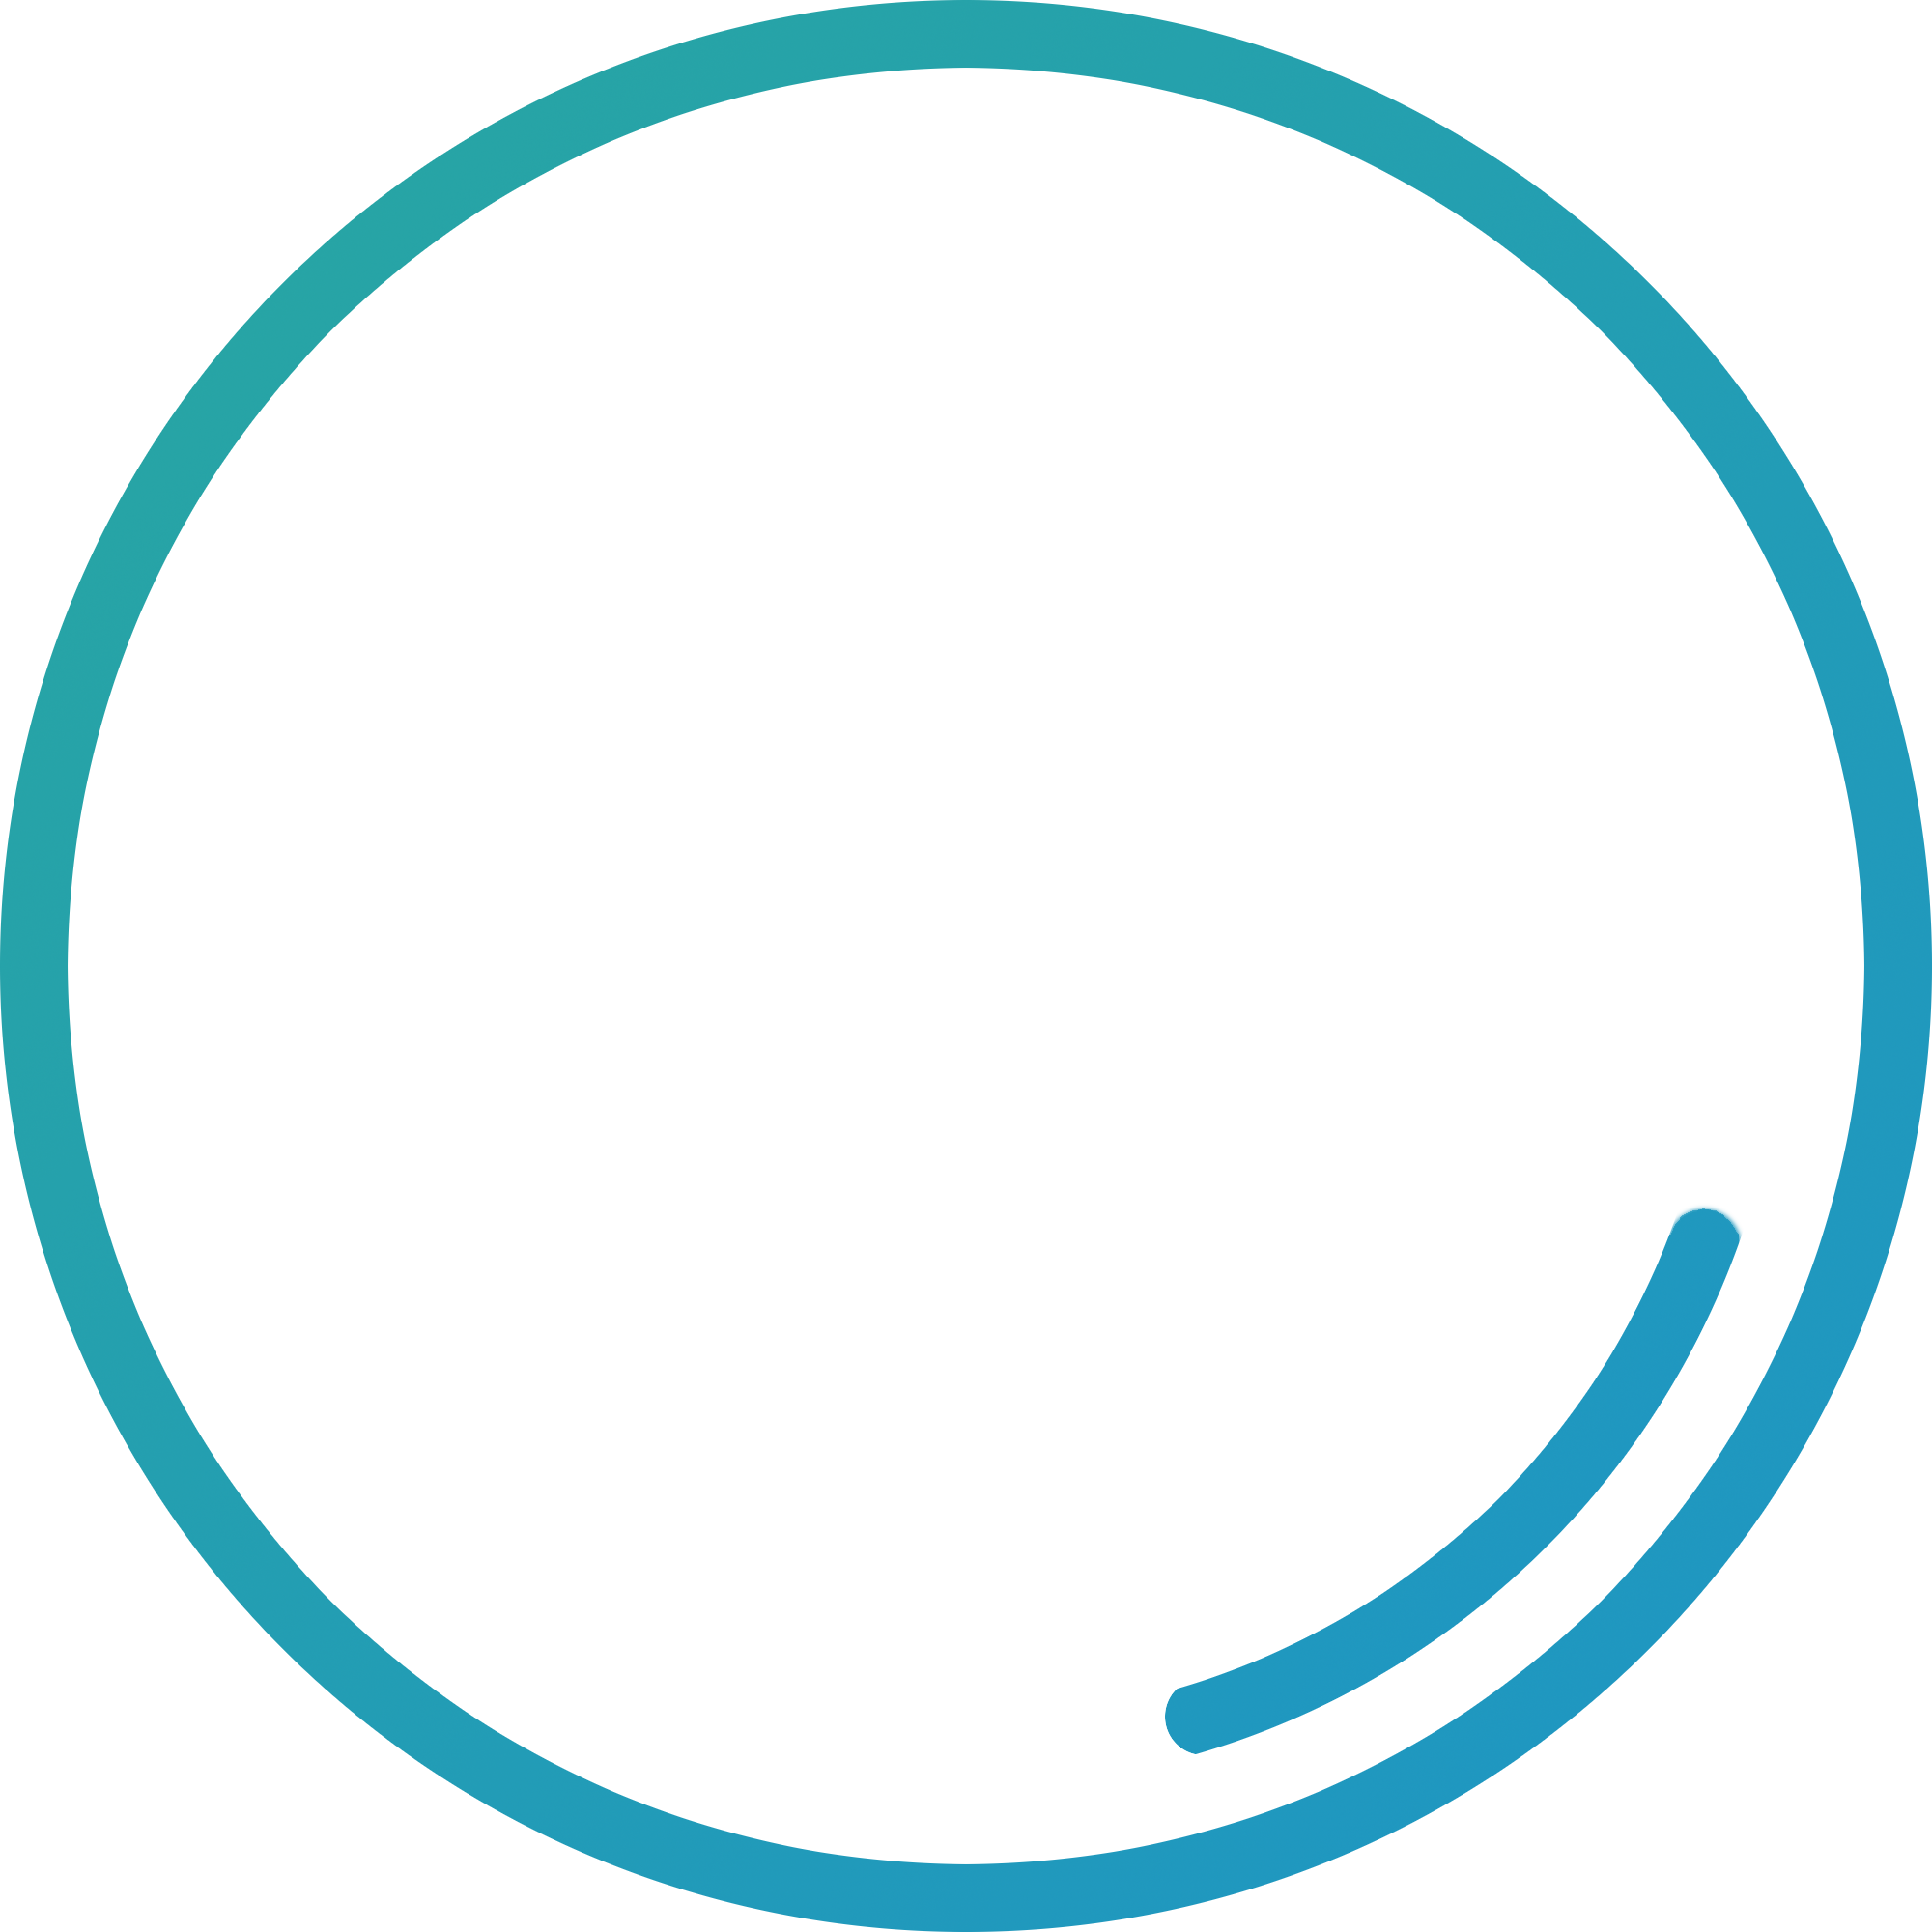 A green and blue circle with a small blue arc of circle inside it.